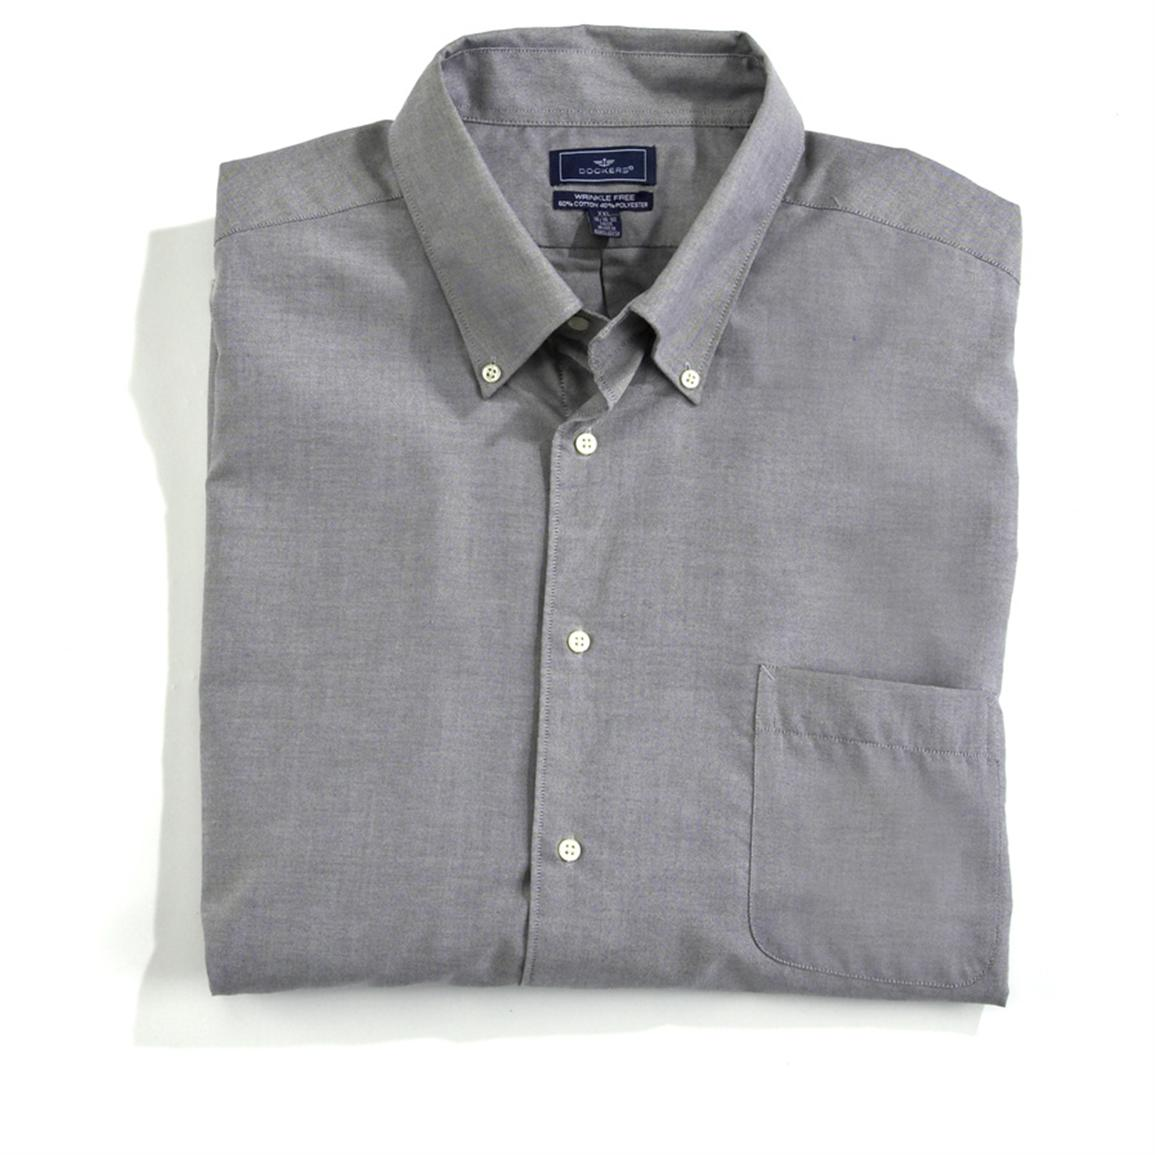 Dockers wrinkle free long sleeve button down shirt Best wrinkle free dress shirts